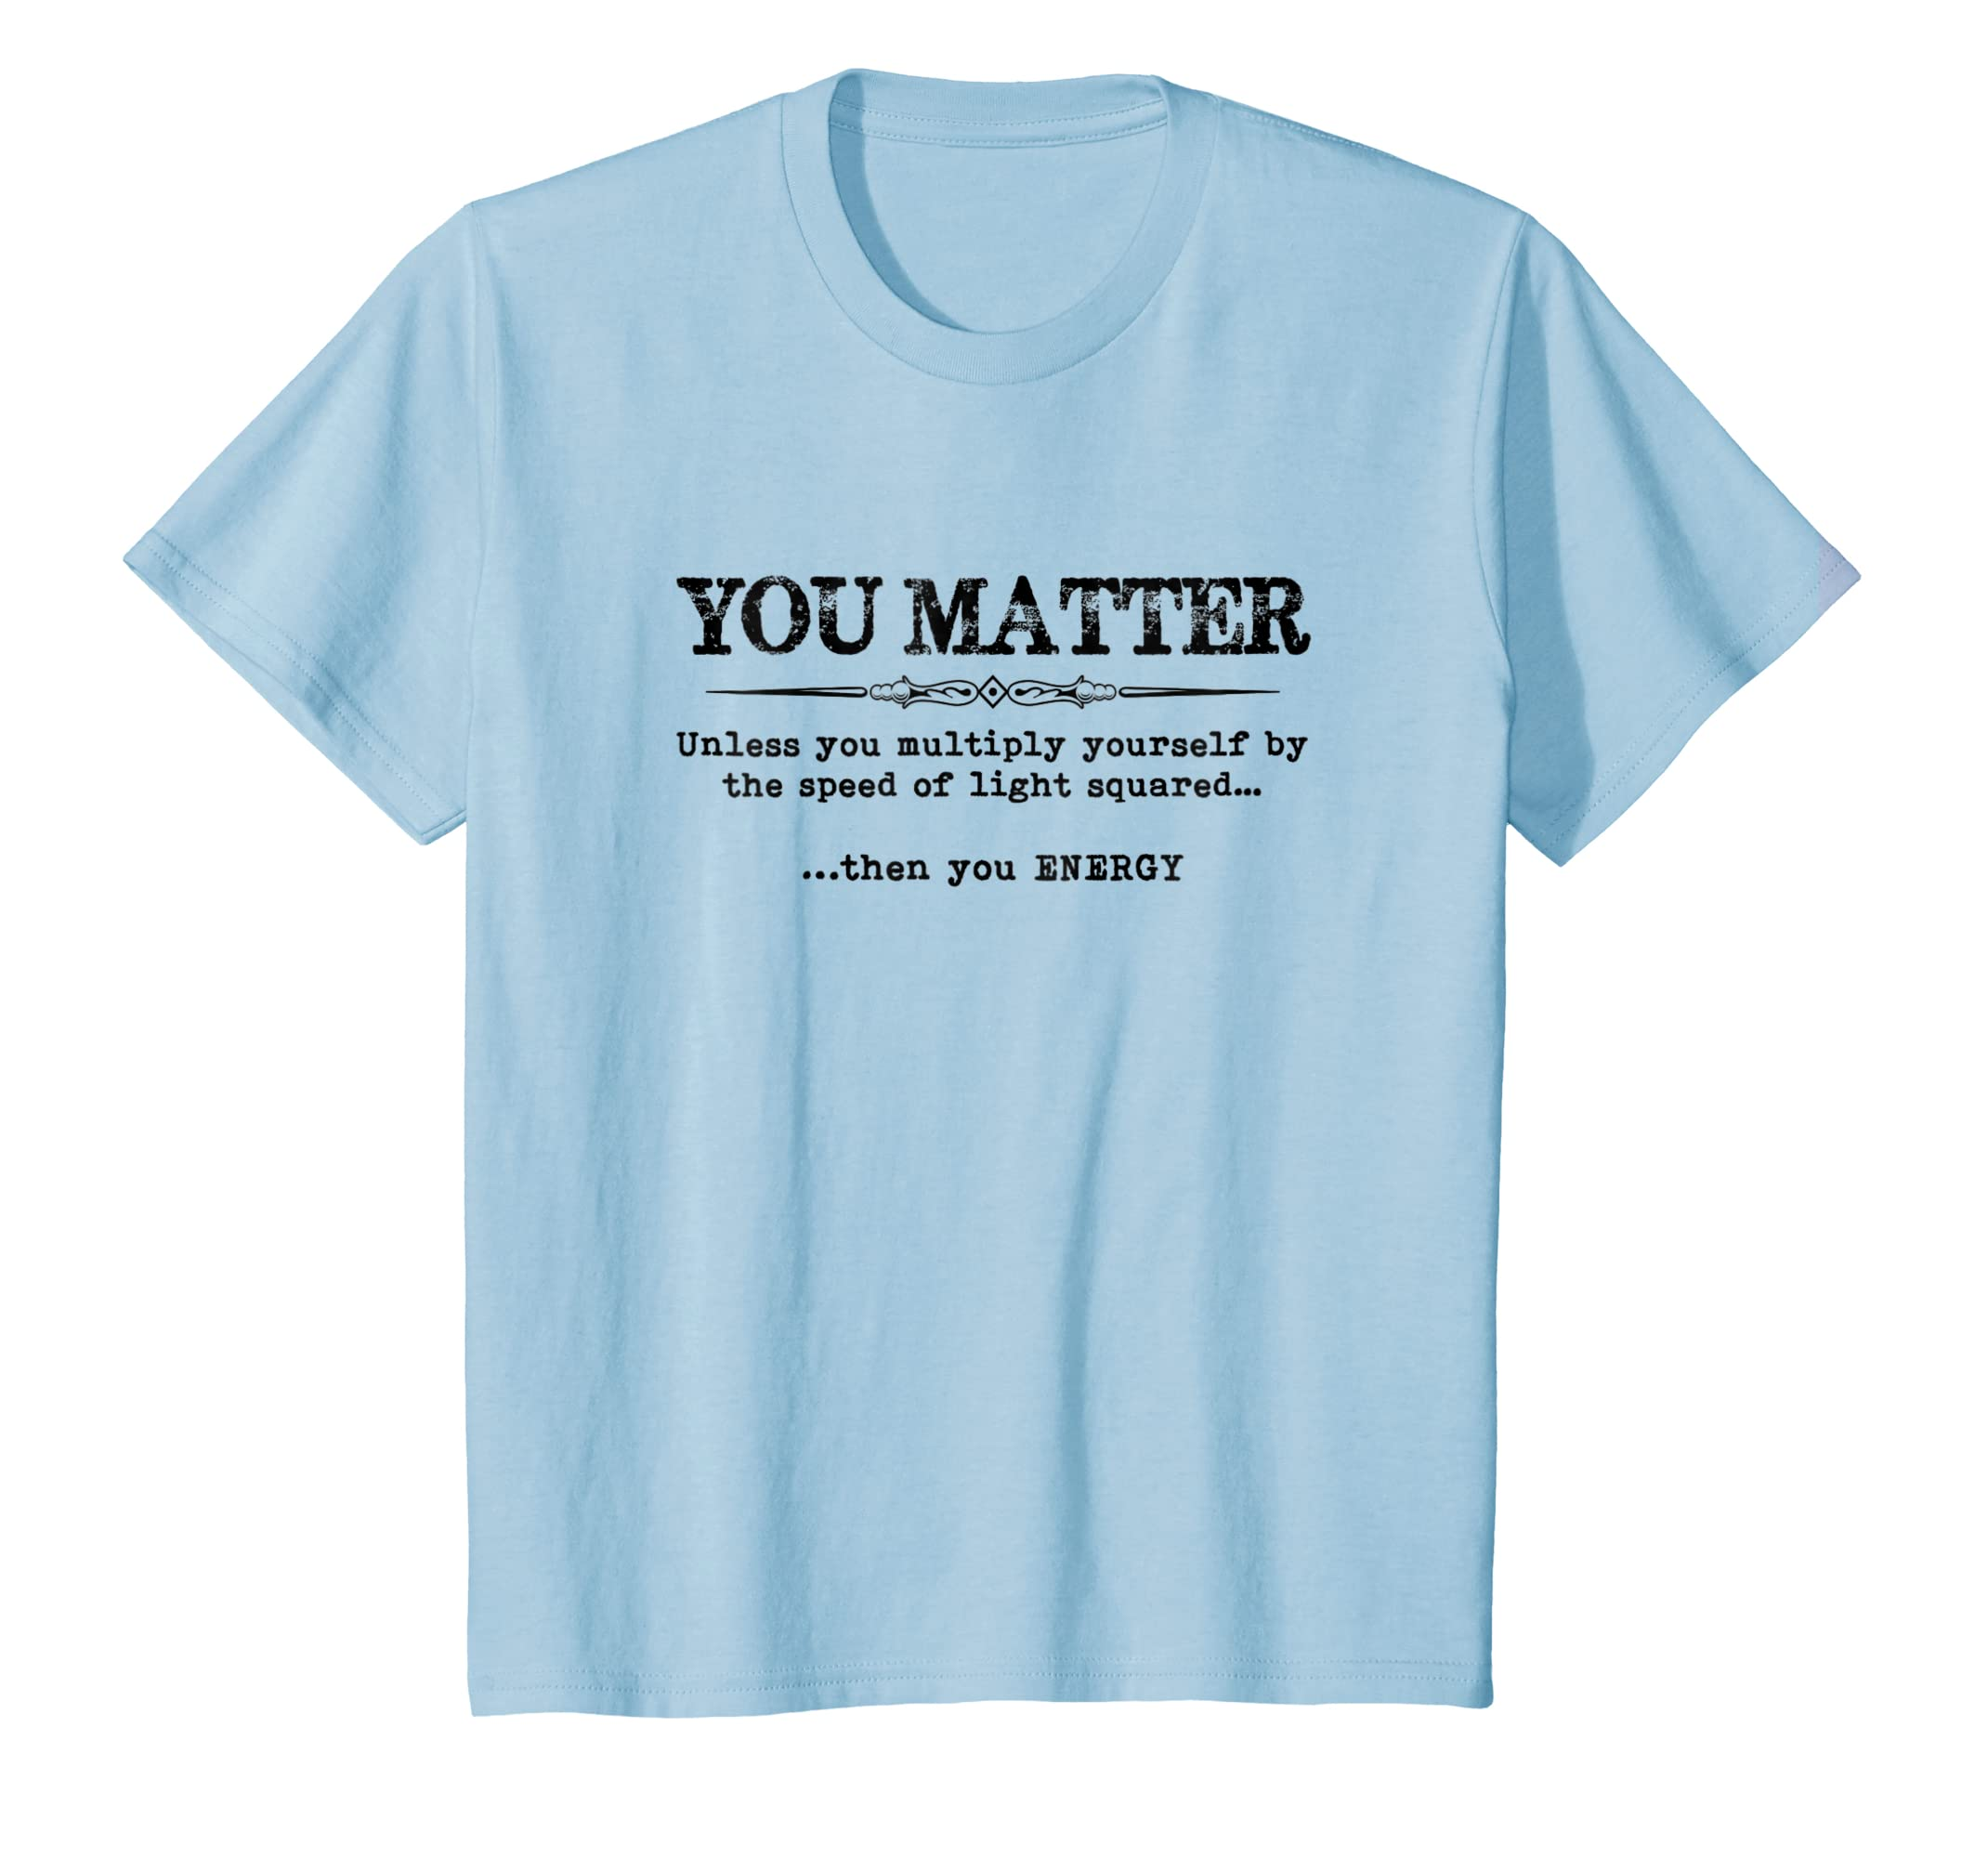 e8486ed2b Amazon.com: You Matter Then You Energy T Shirt Mens & Womens Tee - Funny:  Clothing